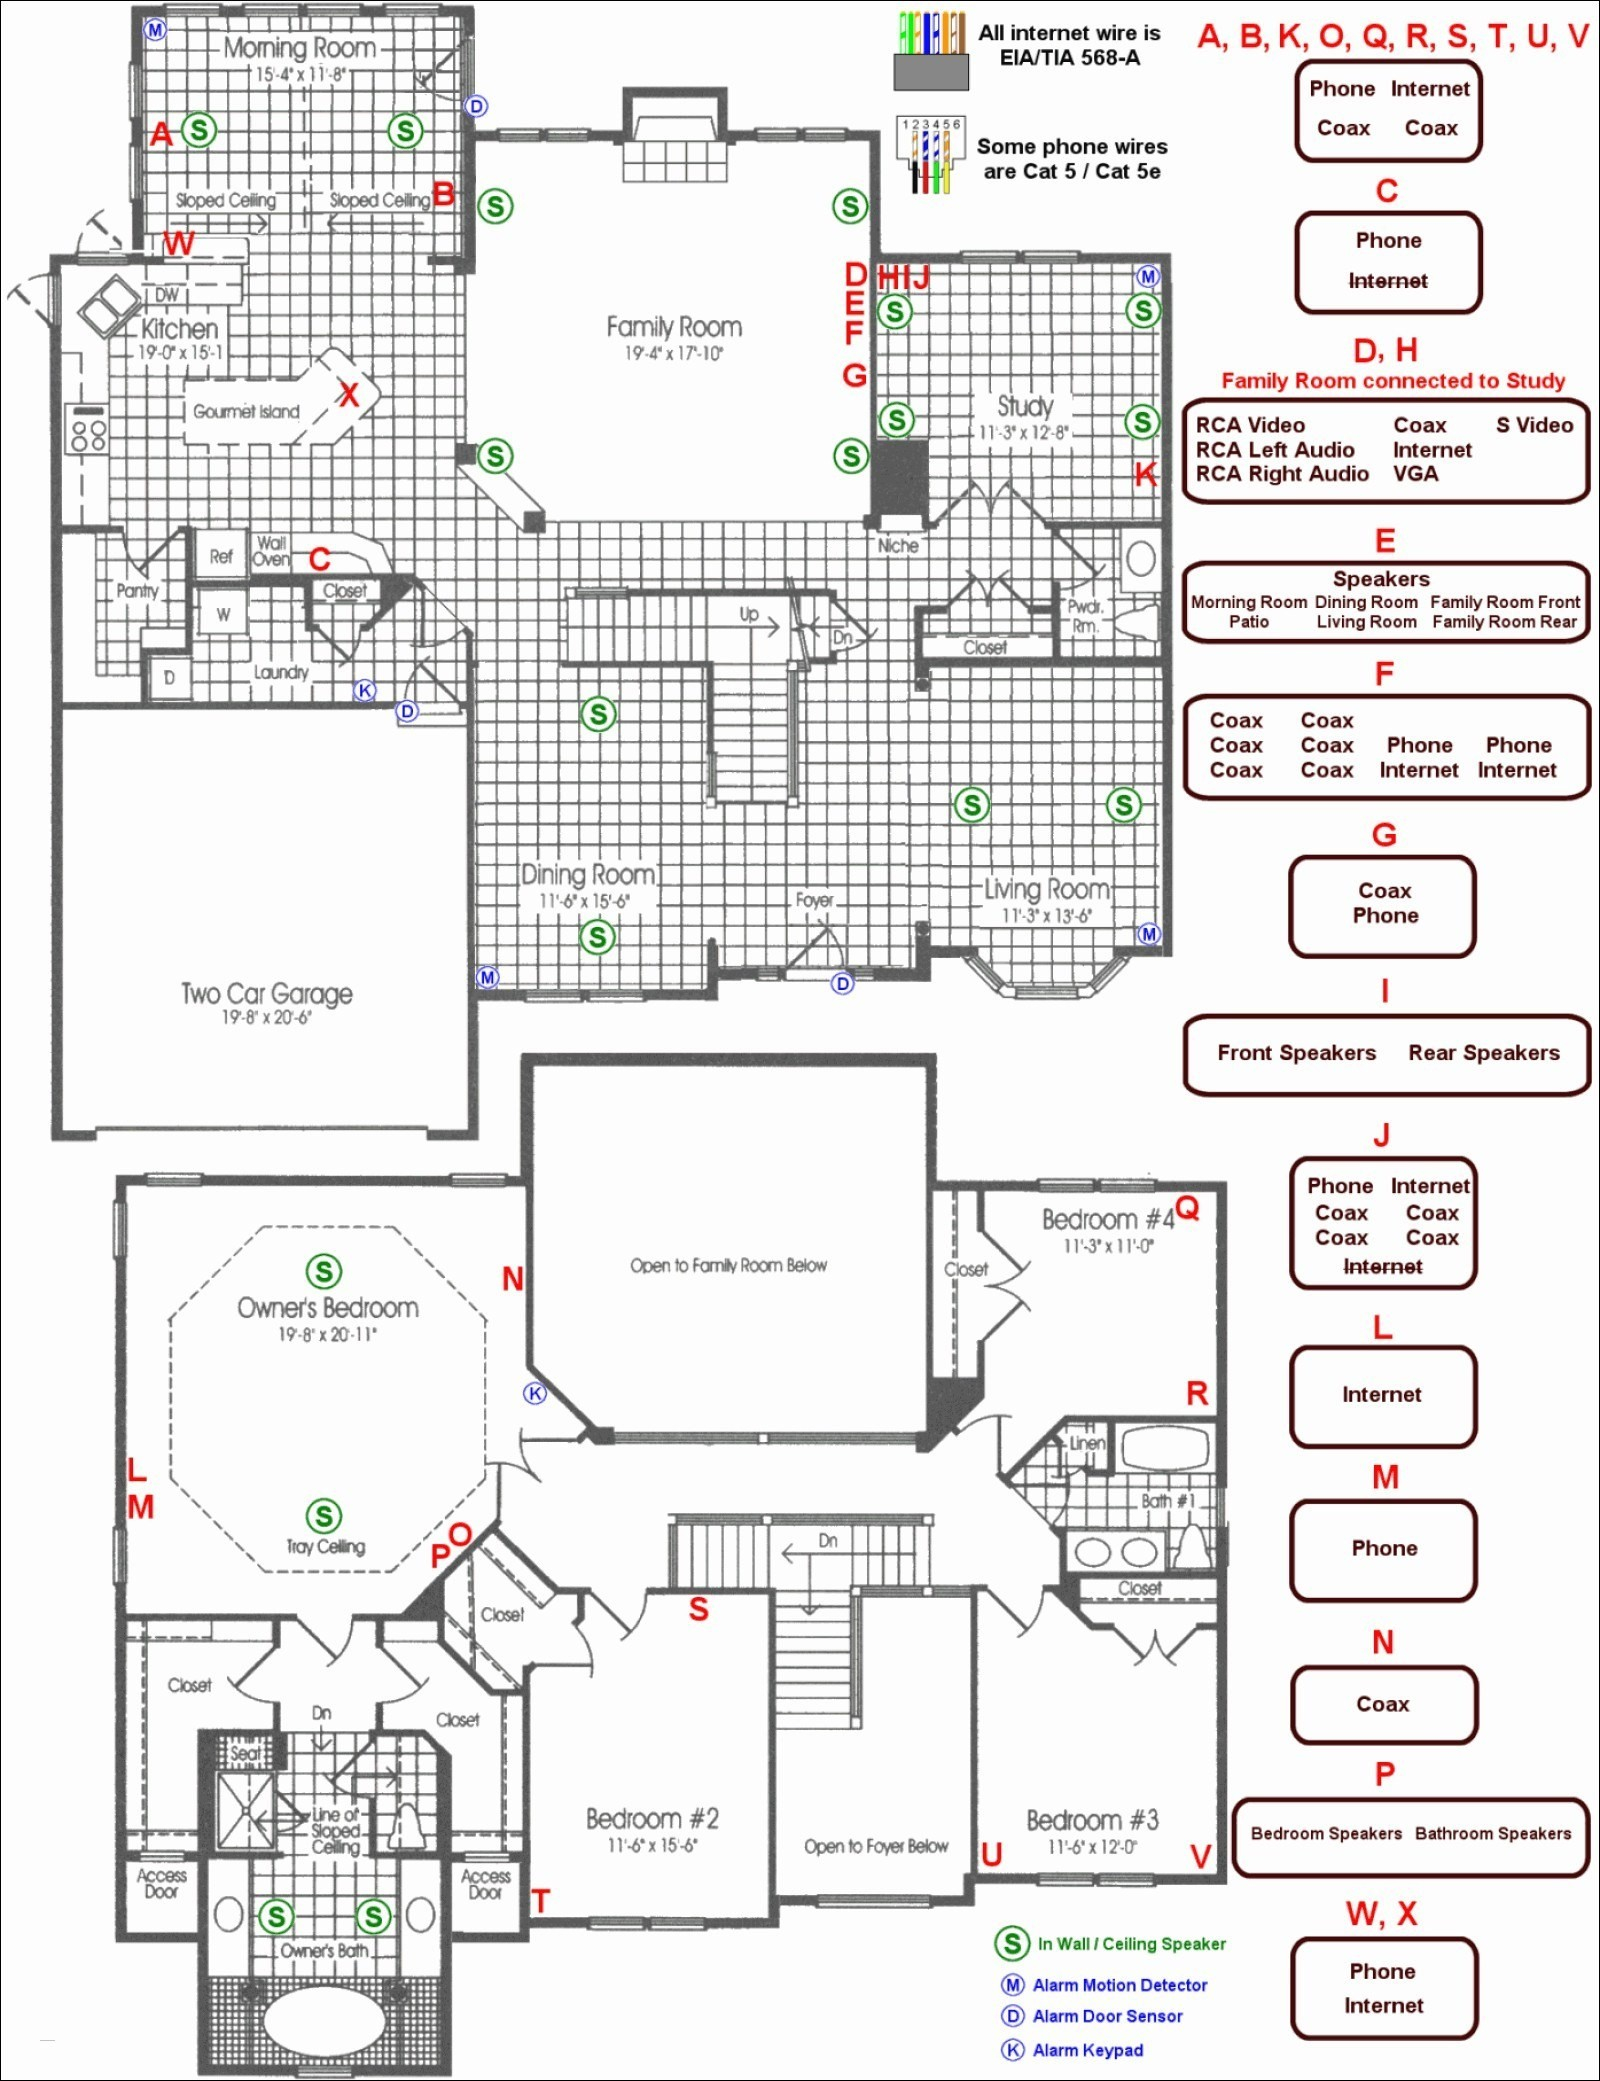 kitchen electrical wiring diagram Collection-House Wiring Plan Drawing Awesome Electrical Wiring Diagram Symbols Sample 9-i